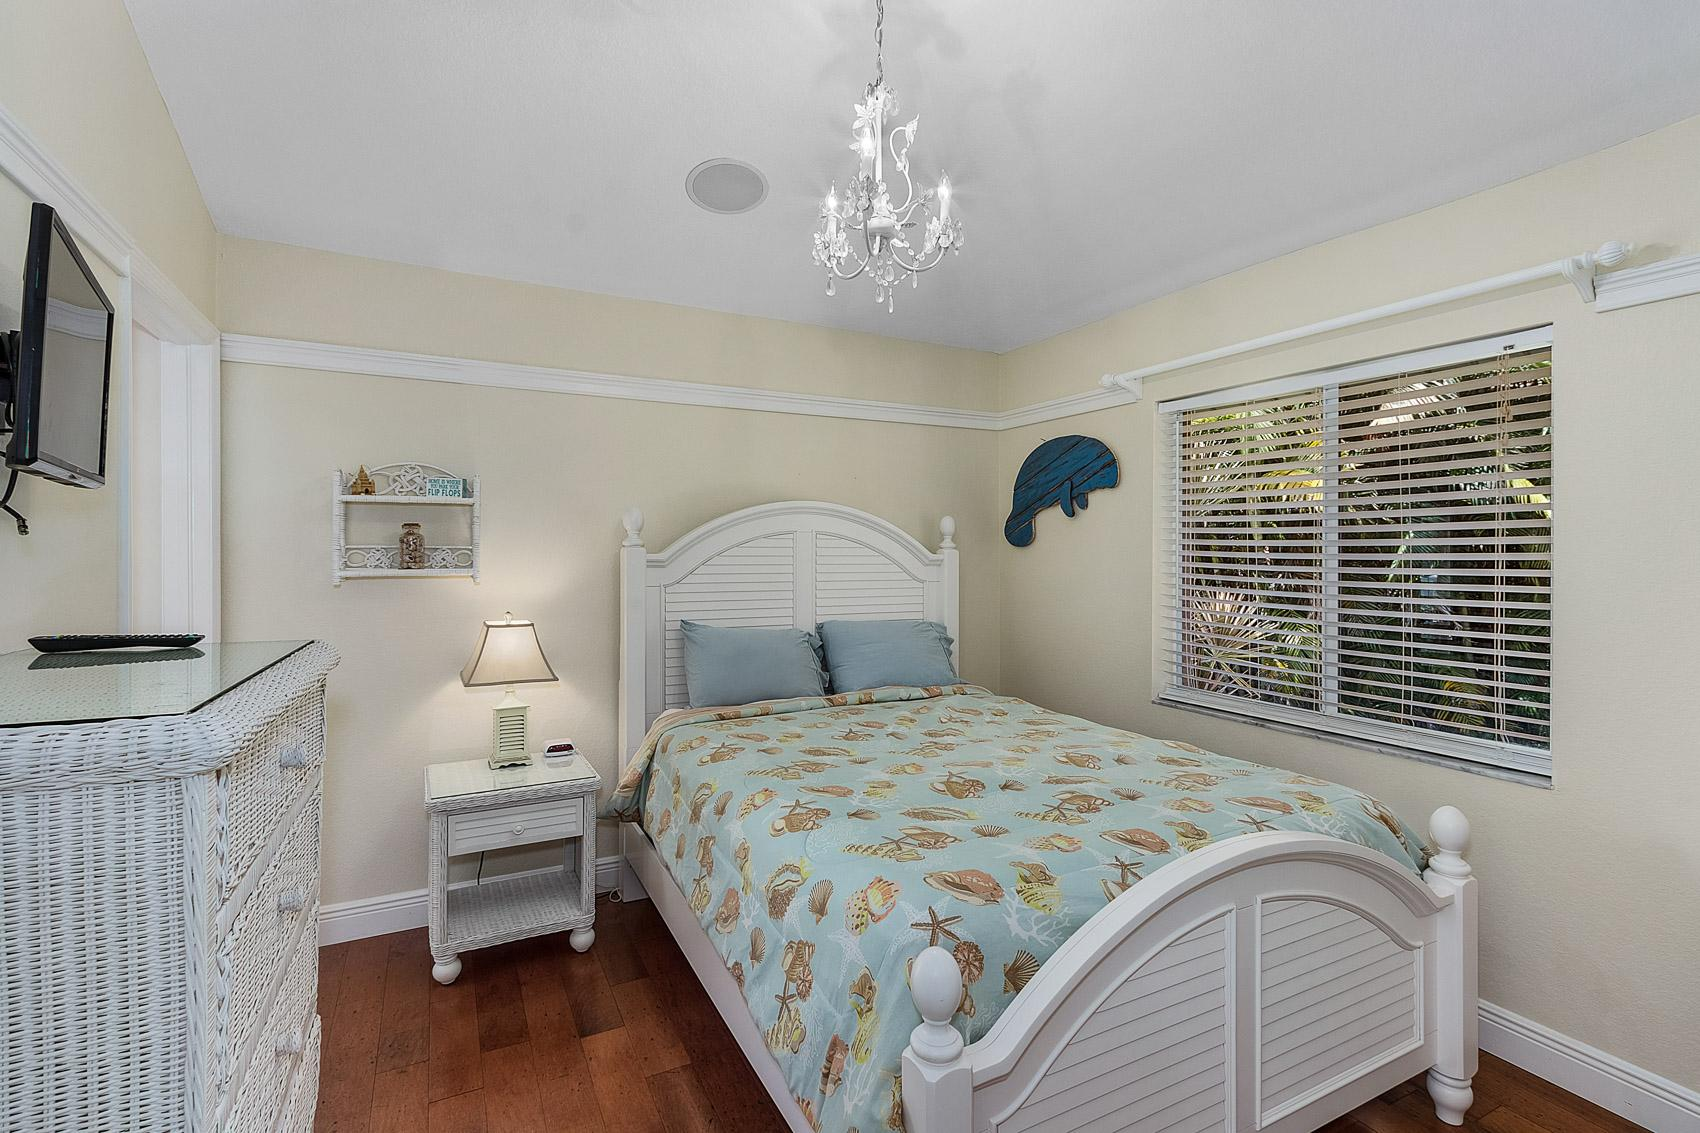 Bedroom 2 with quen bed